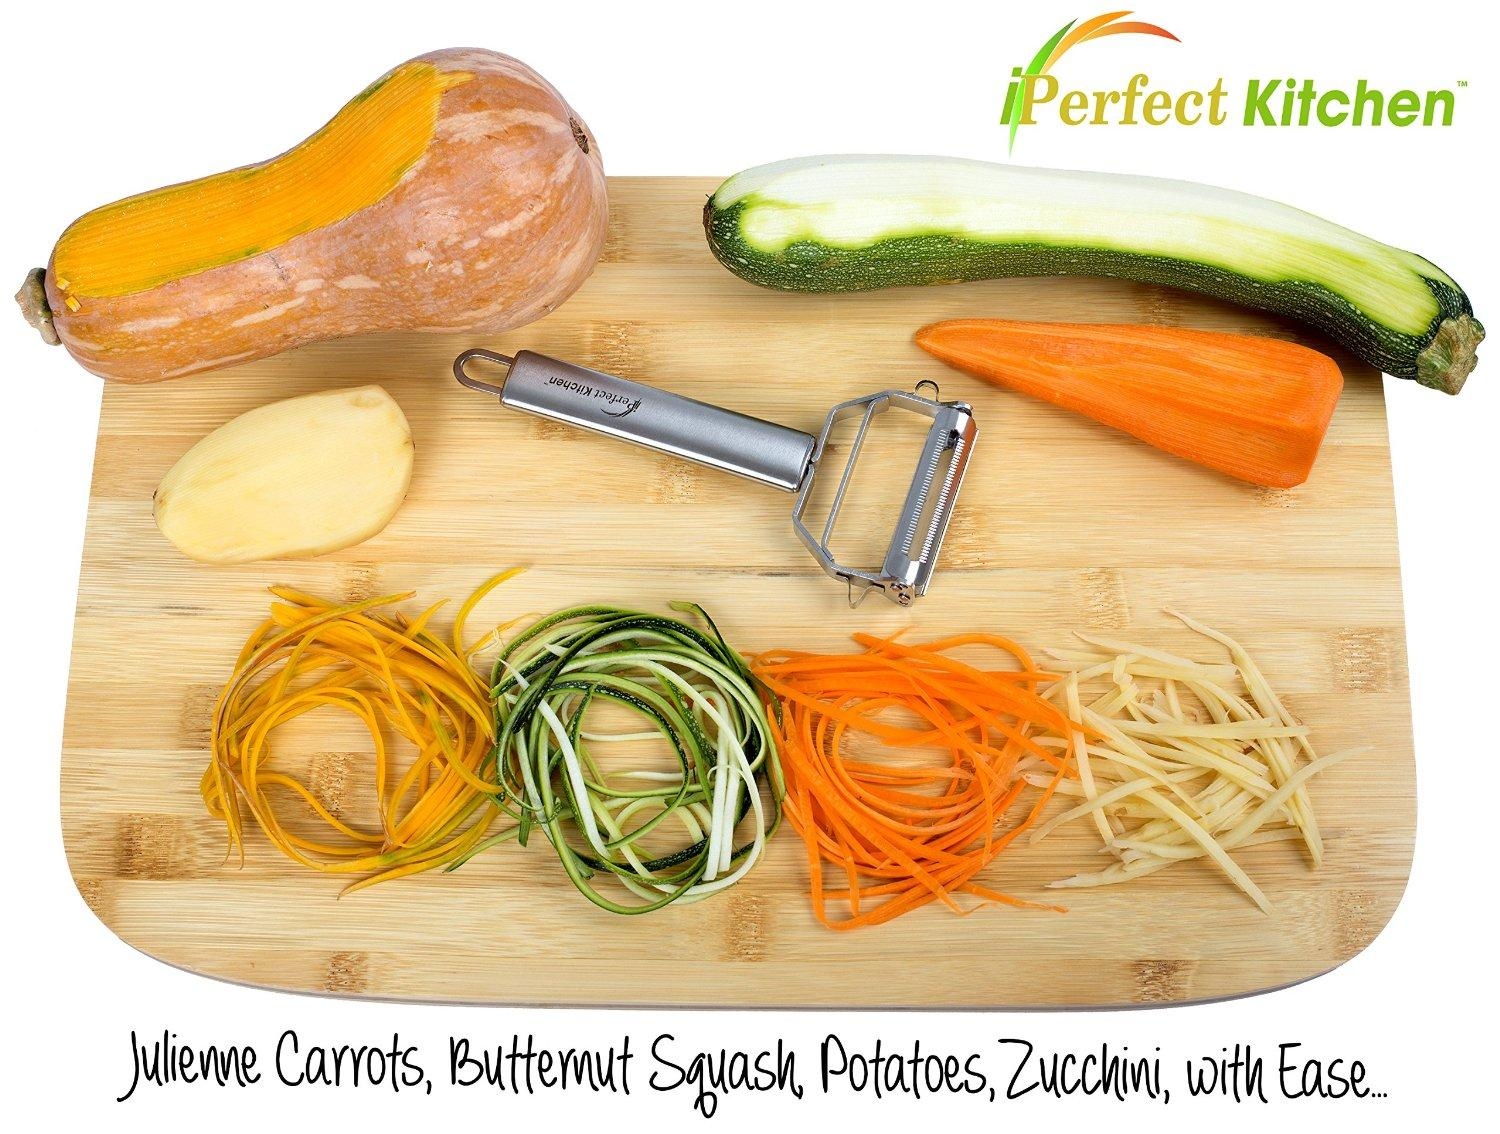 Recommended Amazon Item of the Week $8.95 iPerfect Kitchen Ultra Sharp Stainless Steel Dual Julienne & Vegetable Peeler with Cleaning Brush